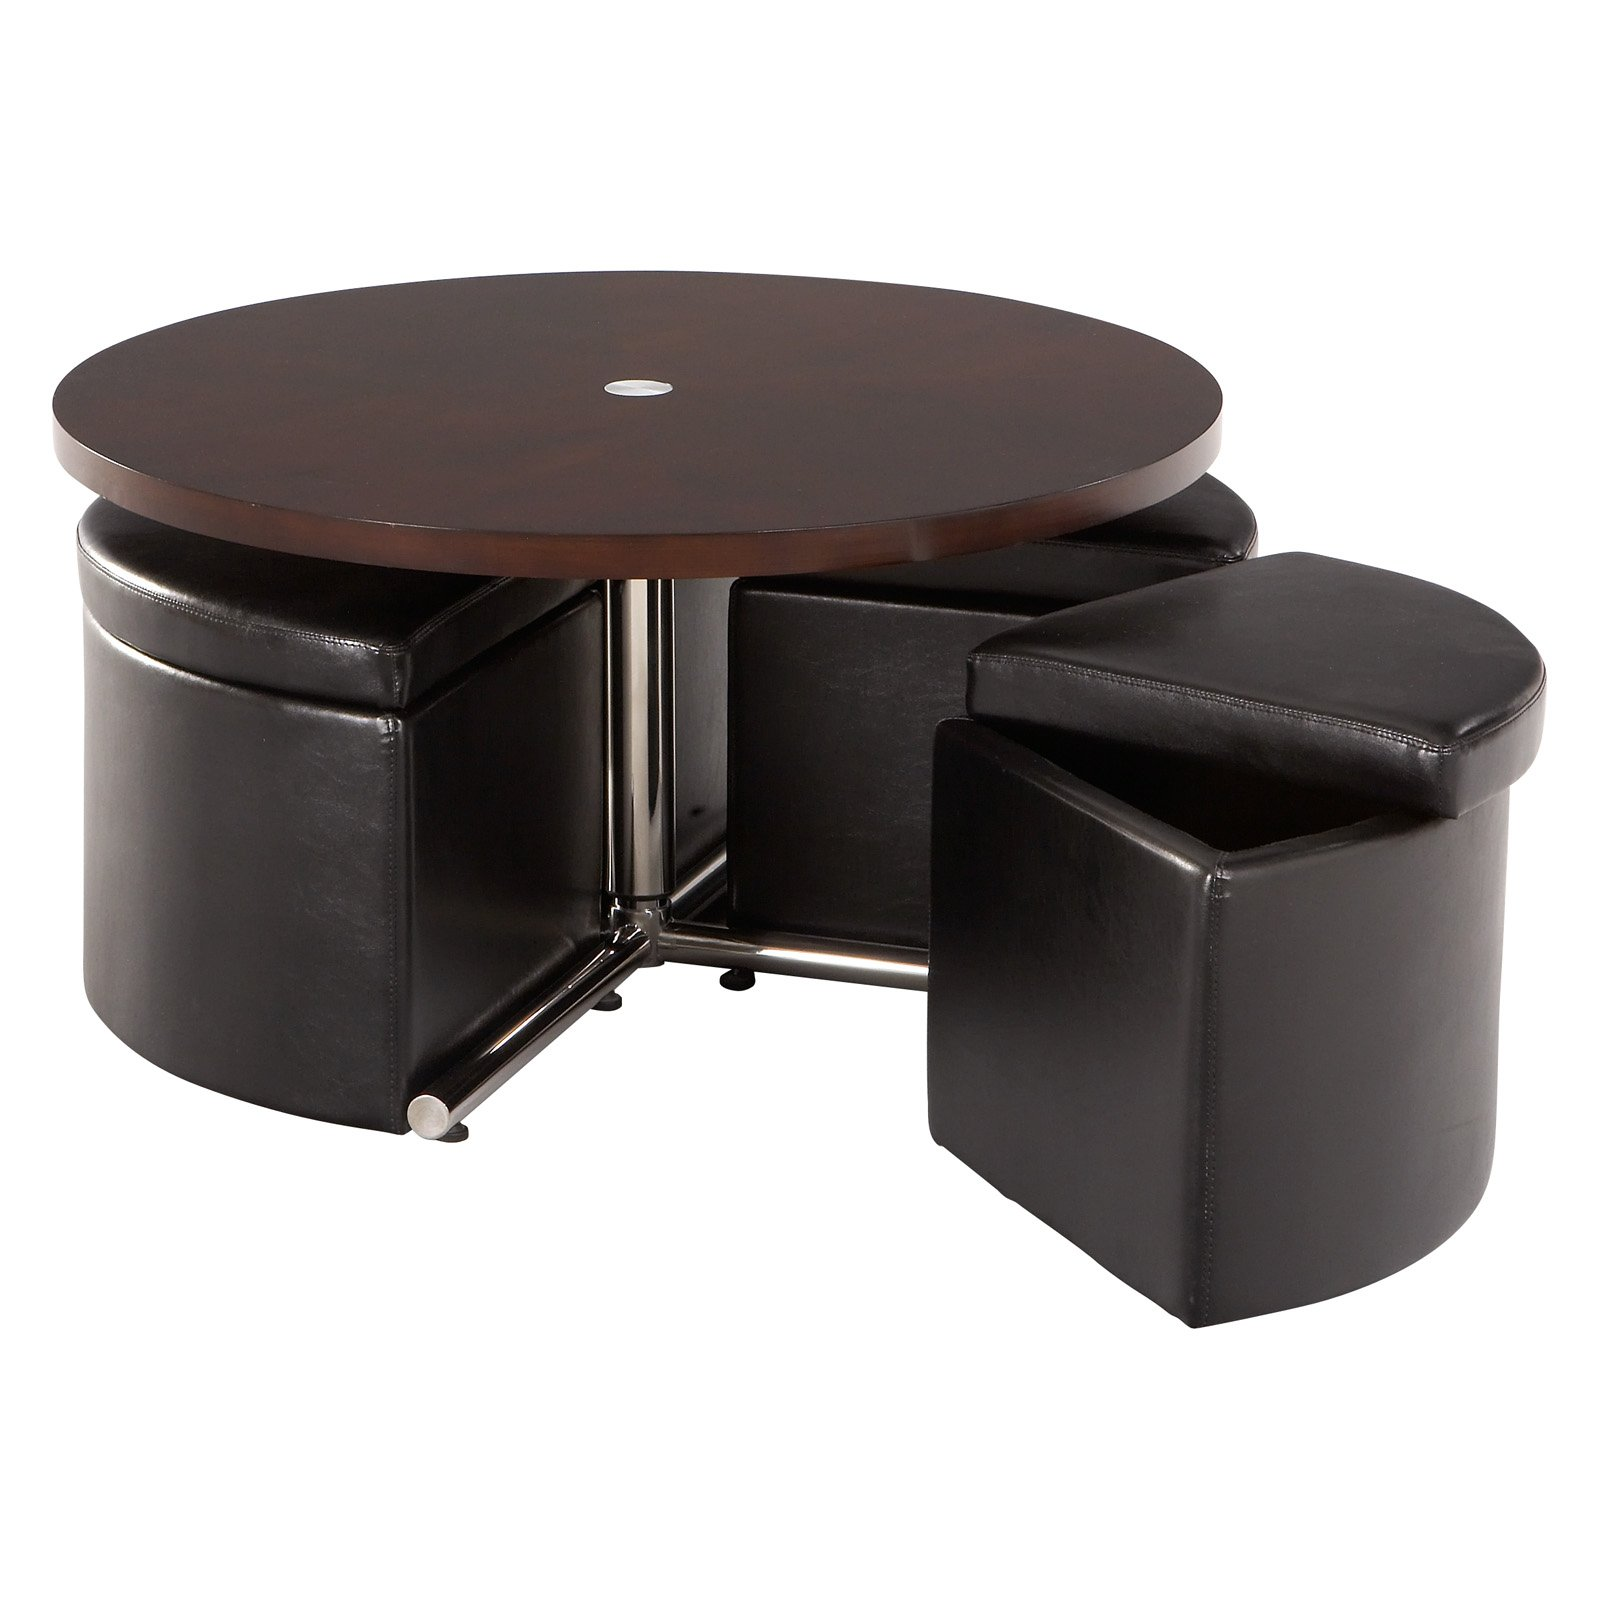 Photos Of The Round Coffee Table With Storage For Any Place And Occasion Black Seating Leather And Round Brown Stained Wood Coffee Table (Image 7 of 10)